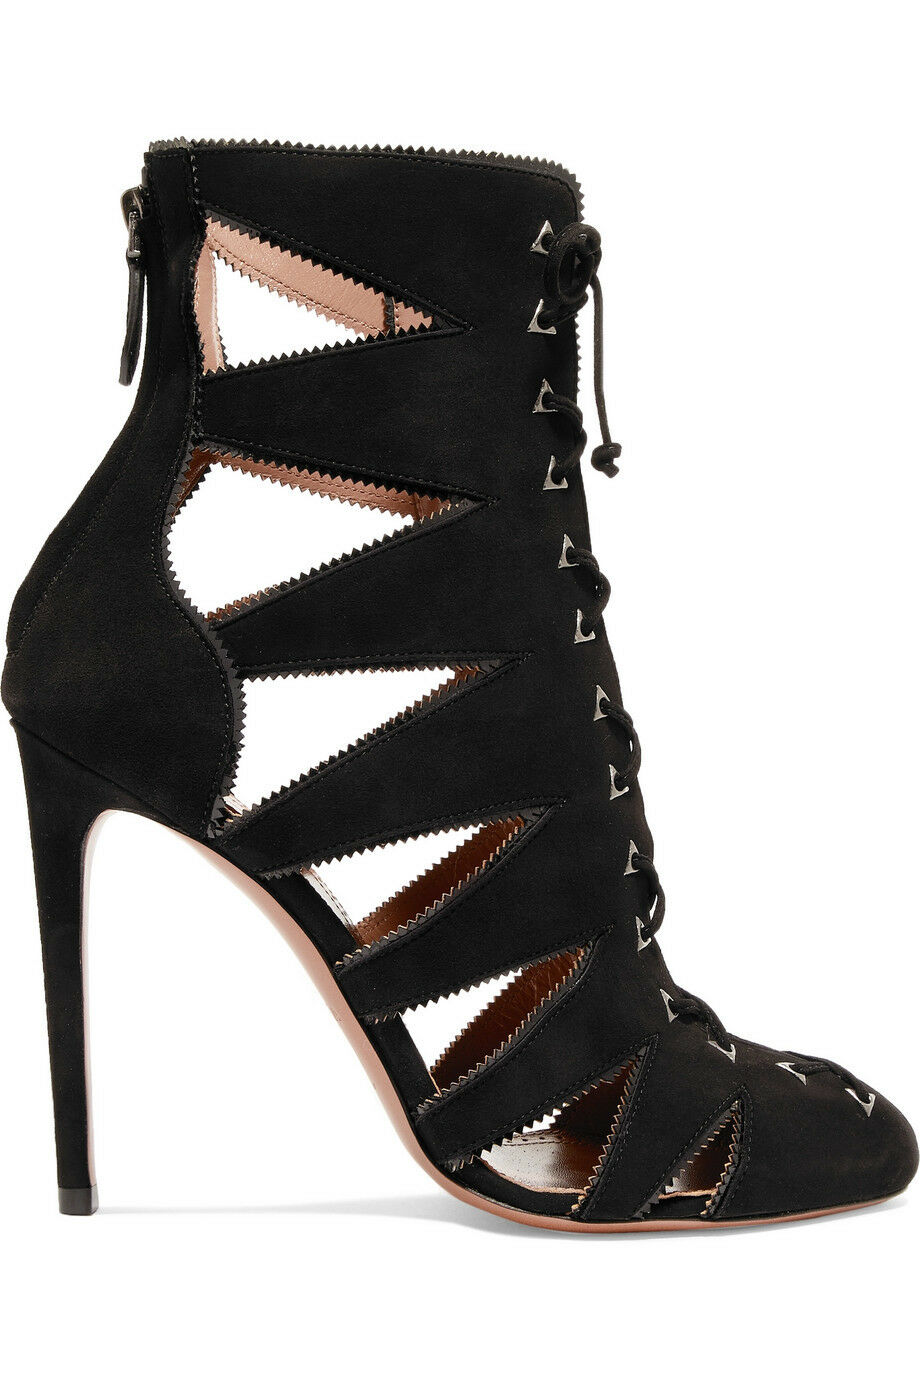 Azzedine Alaia Cutout patent leather-trimmed suede sandals 37